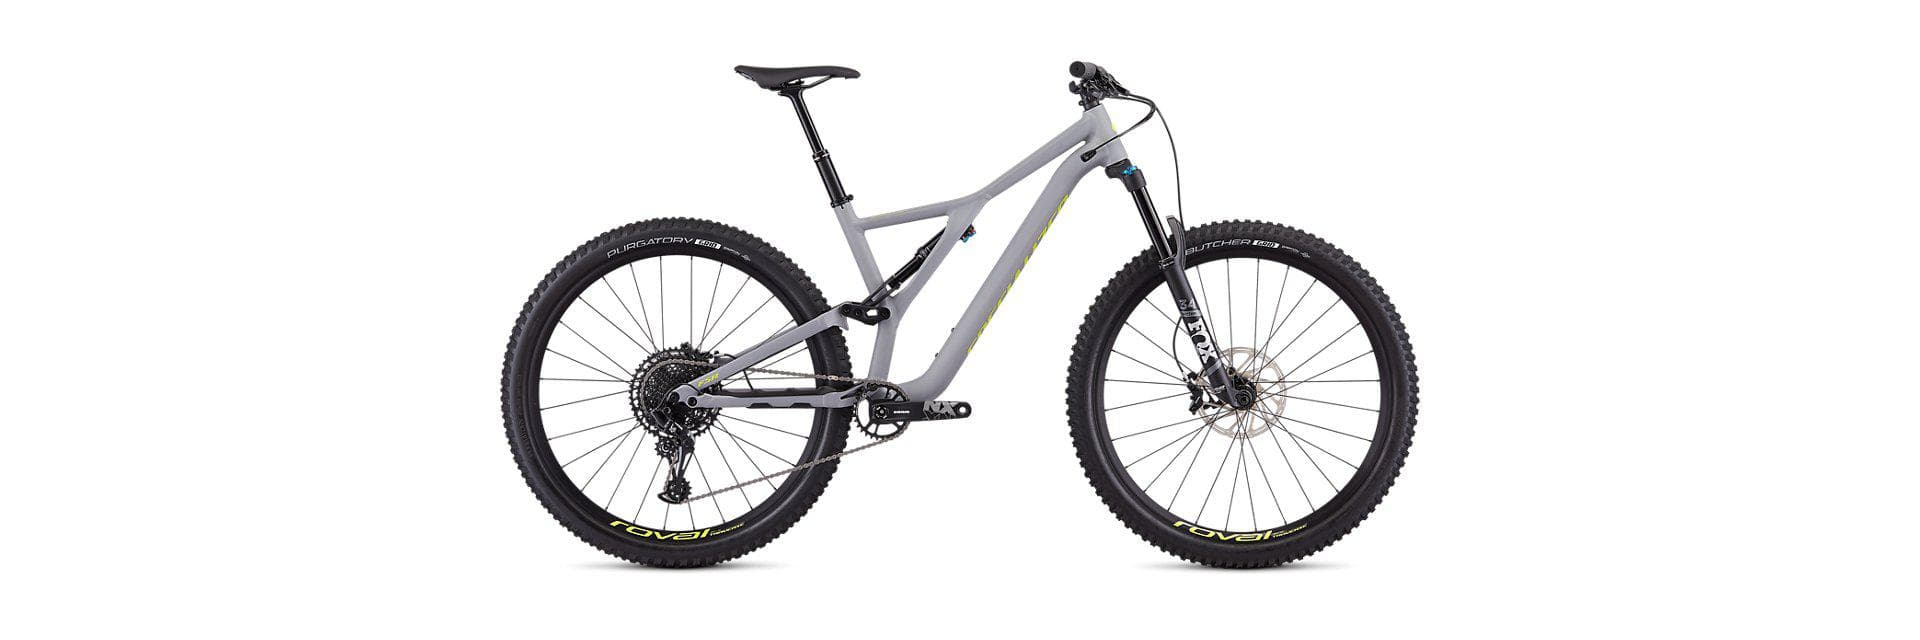 Specialized StumpJumper FSR 29 12 Spd Comp Bike